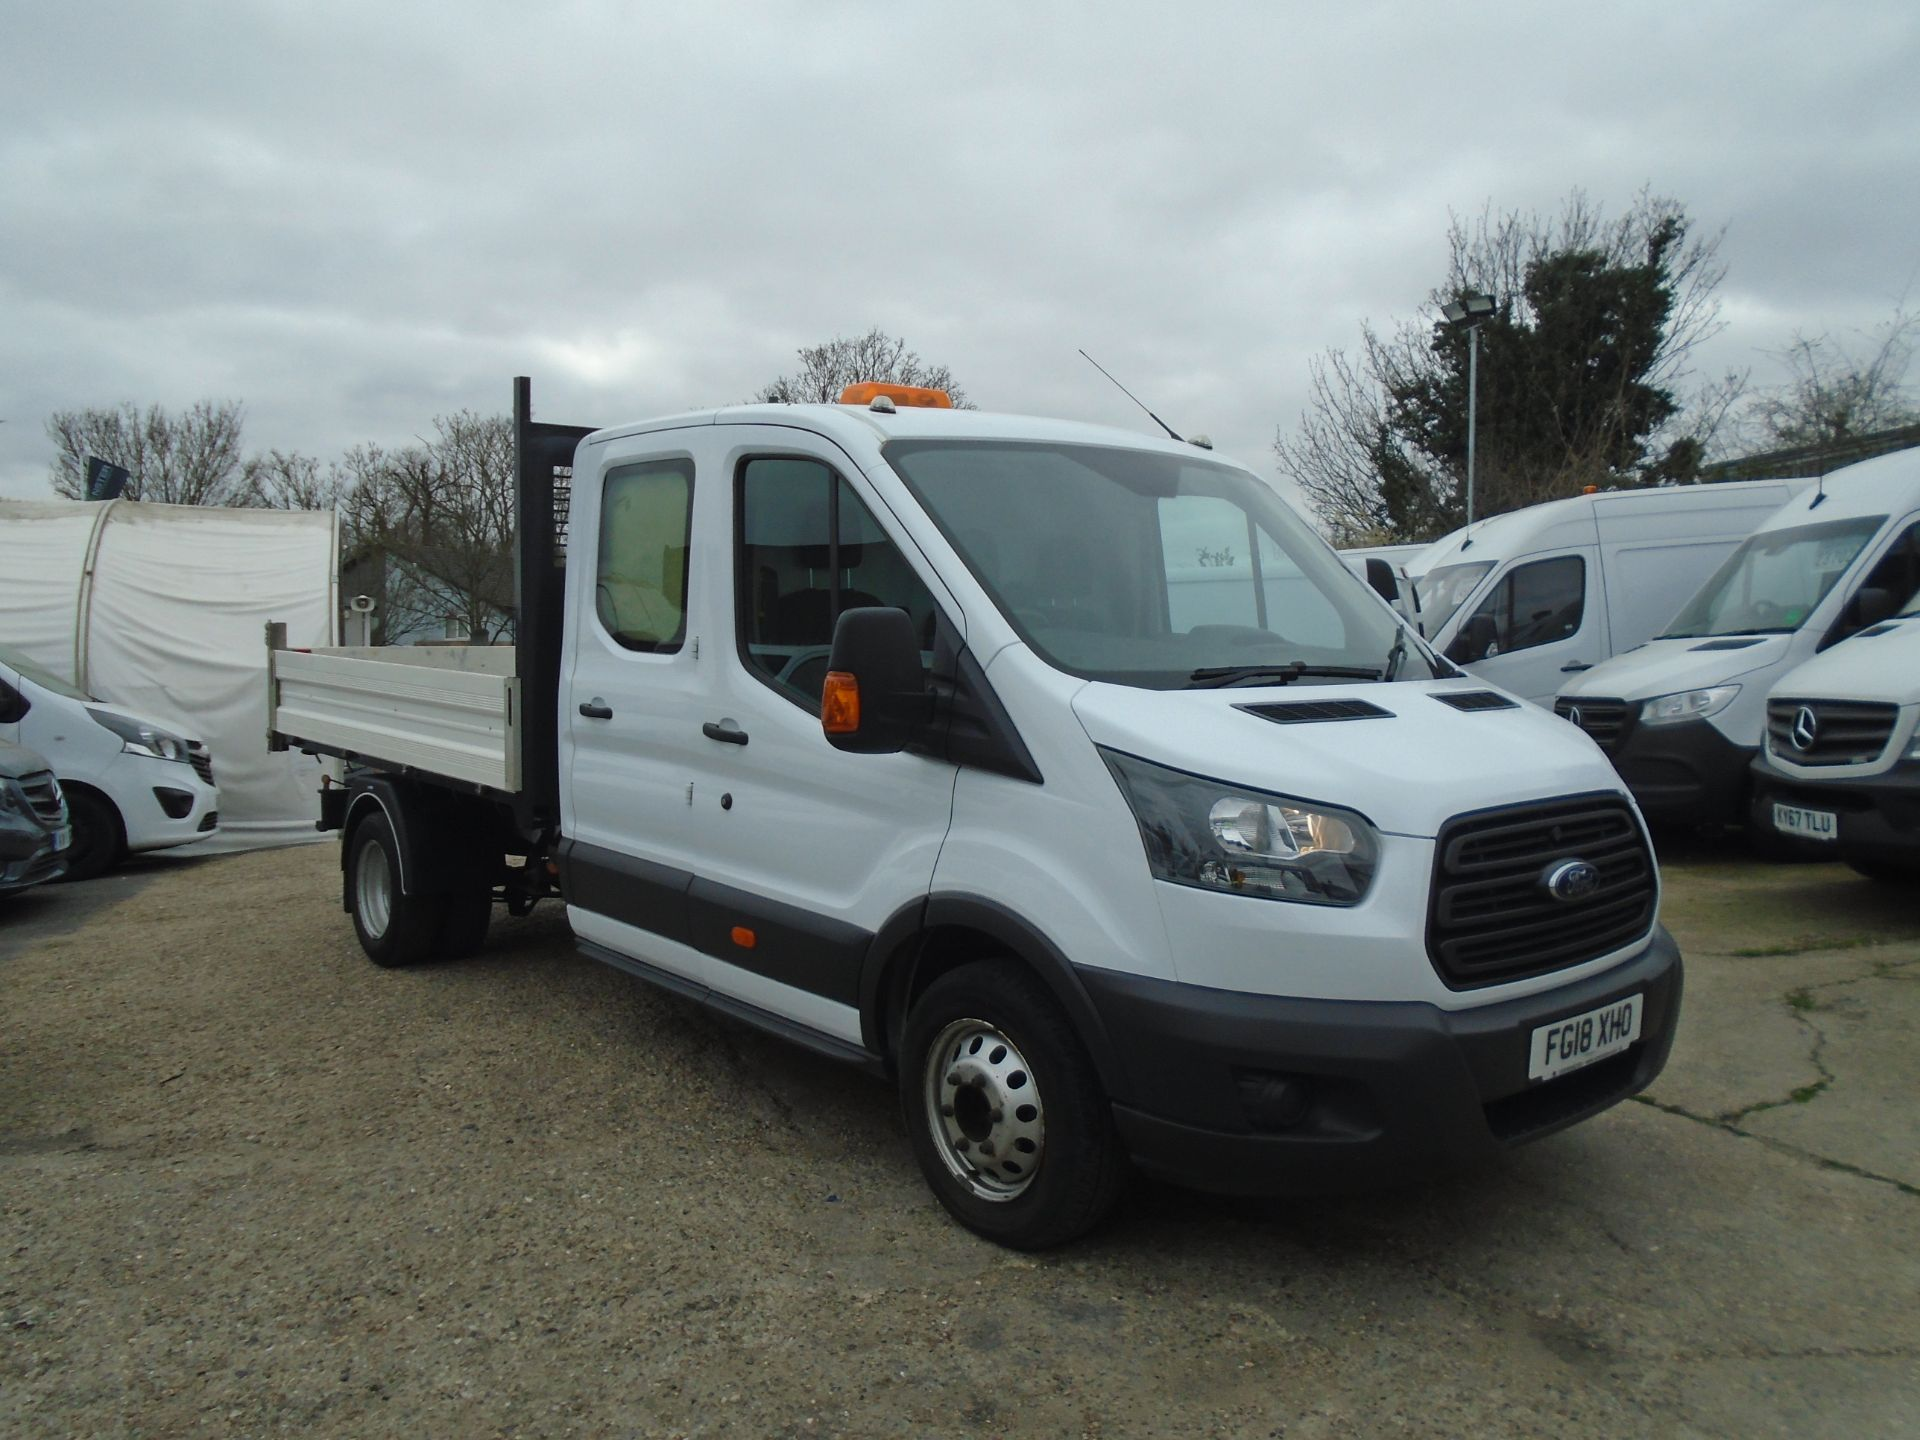 2018 Ford Transit 2.0 Tdci 130Ps Double Cab *NO REAR SEATS* (FG18XHO)